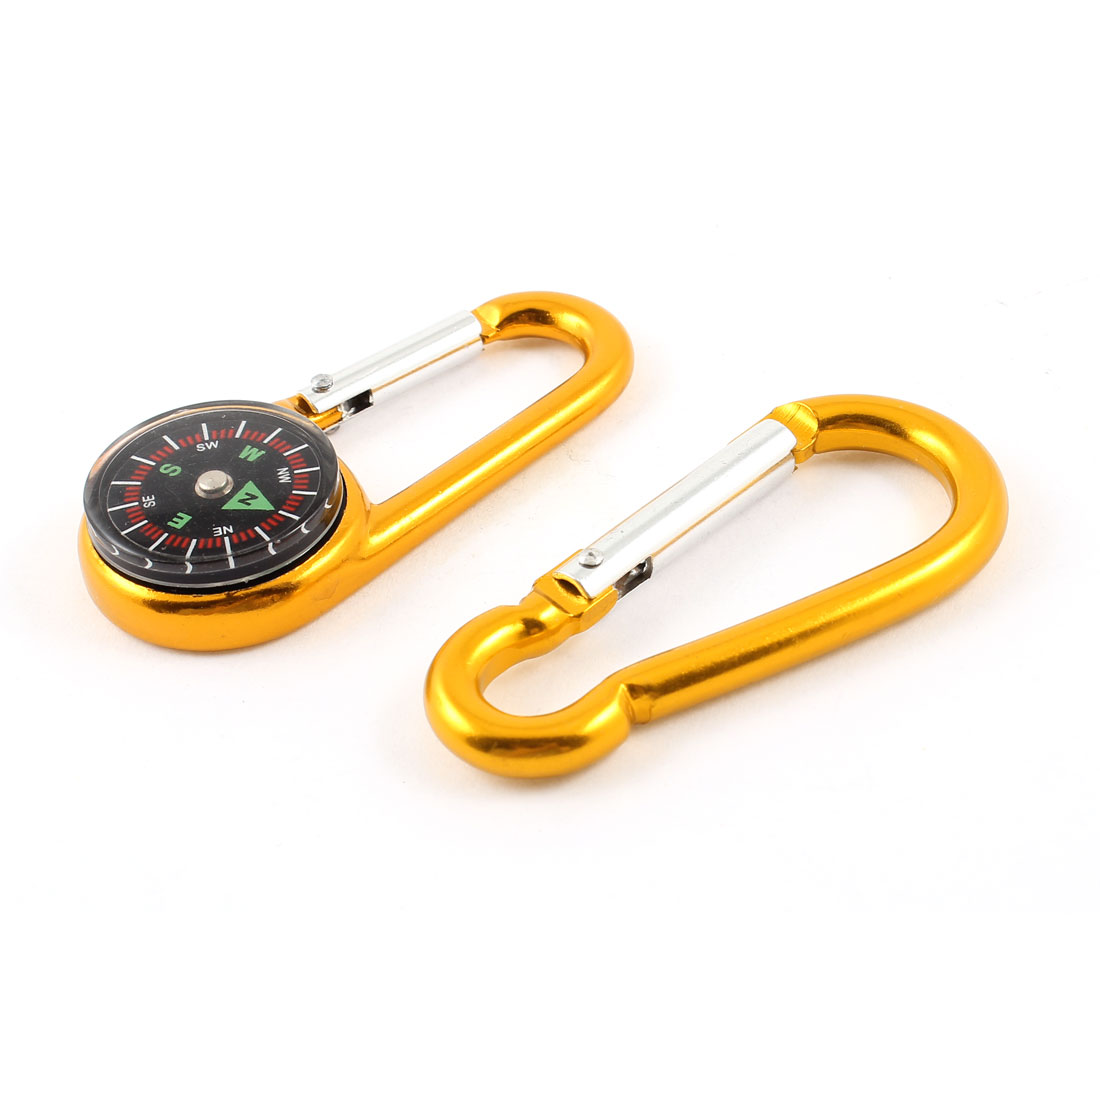 Camping Gold Tone Aluminum Alloy Spring Loaded Gate Carabiner Hook Clip 2 in 1